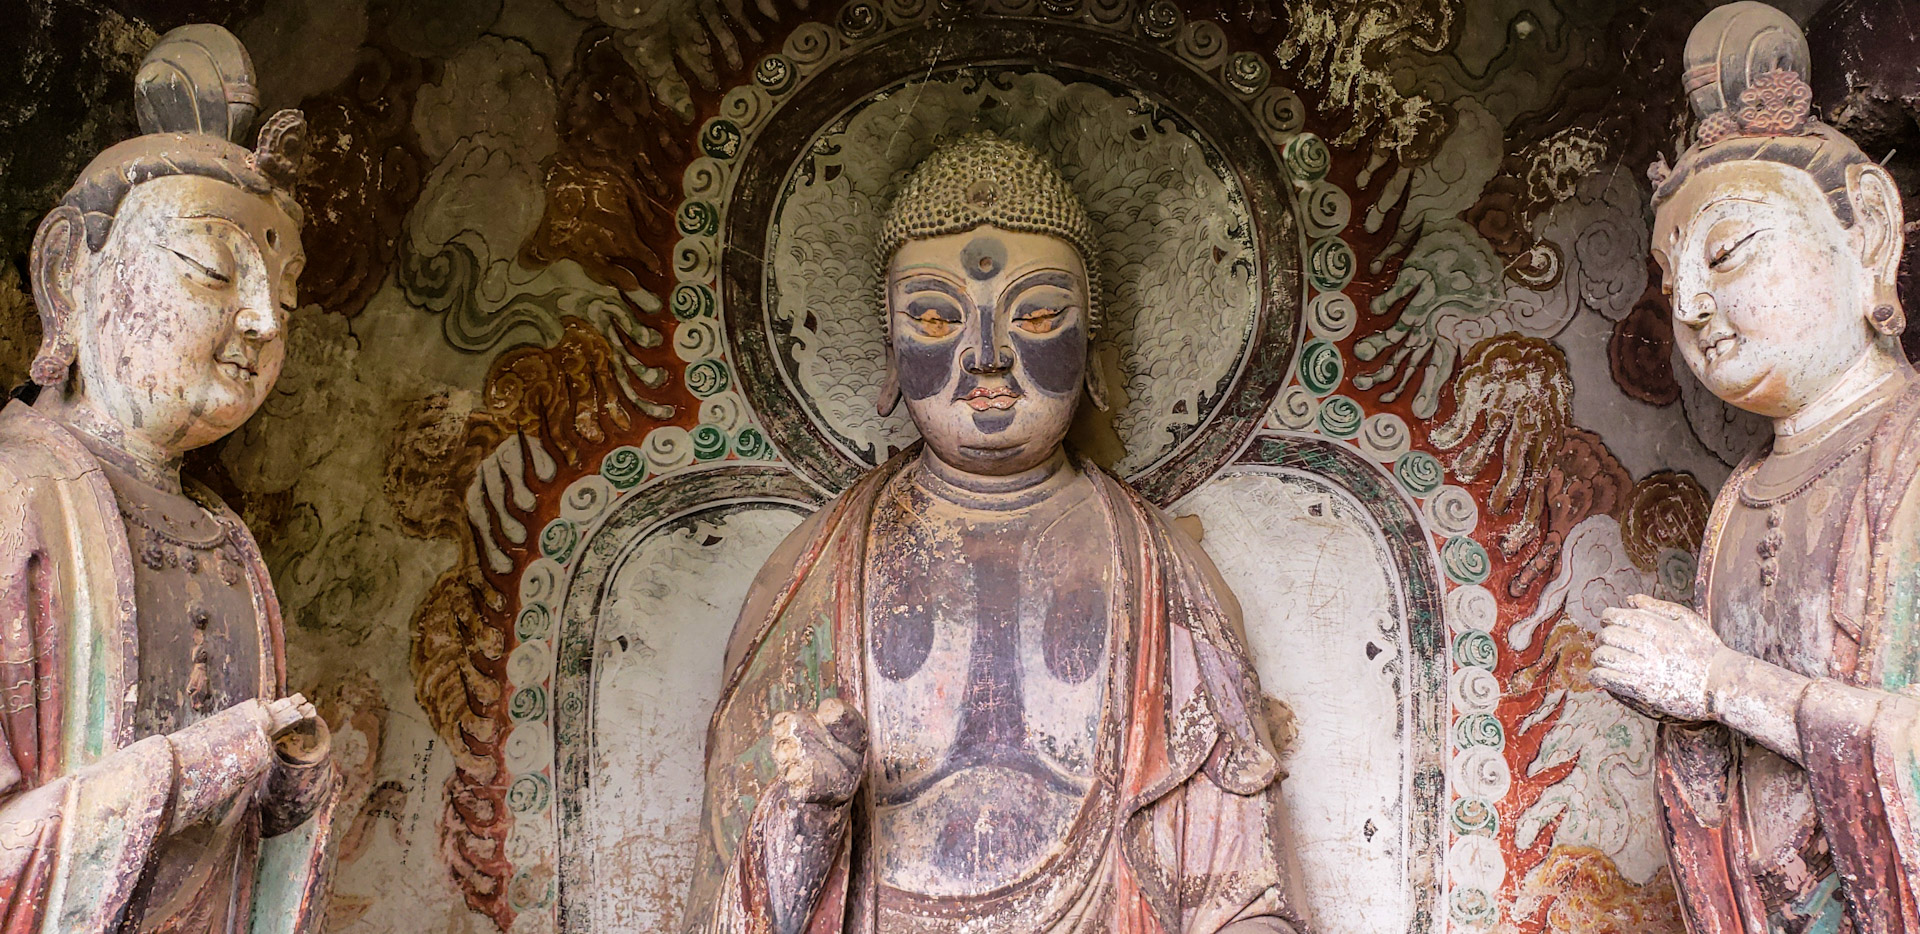 Maijishan Grottoes Buddha Faces